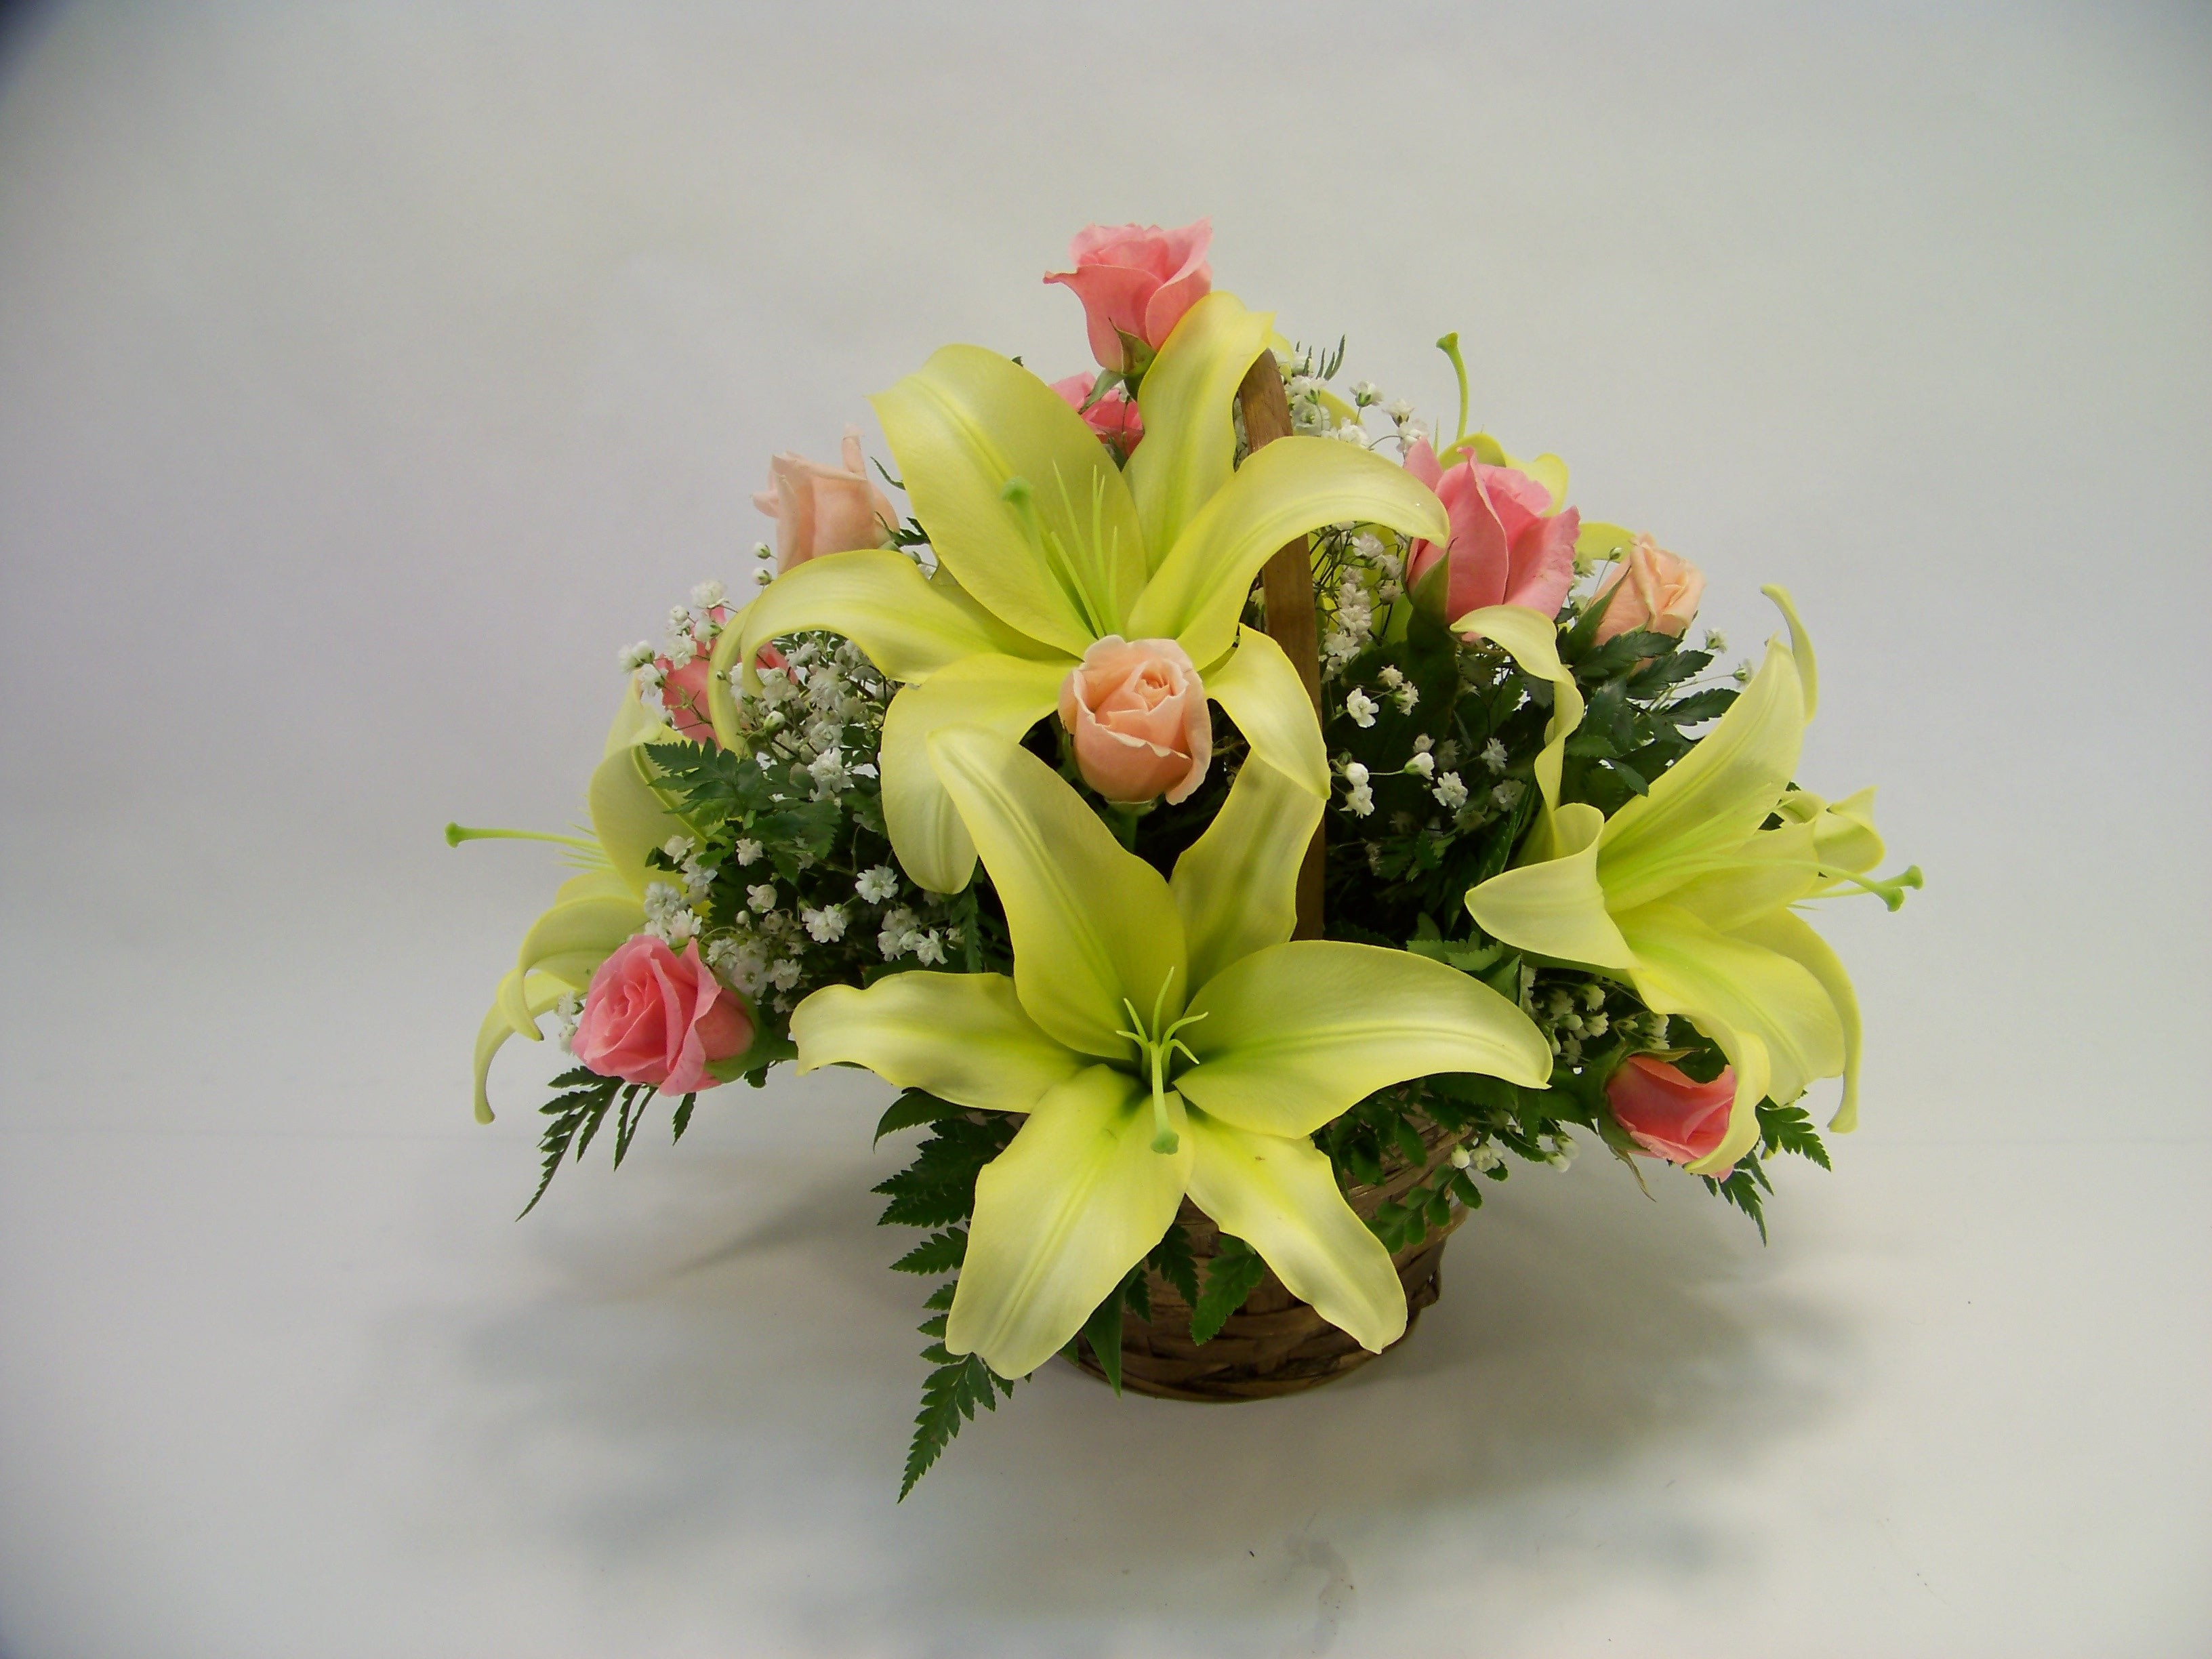 The Charming Lily and Rose Basket